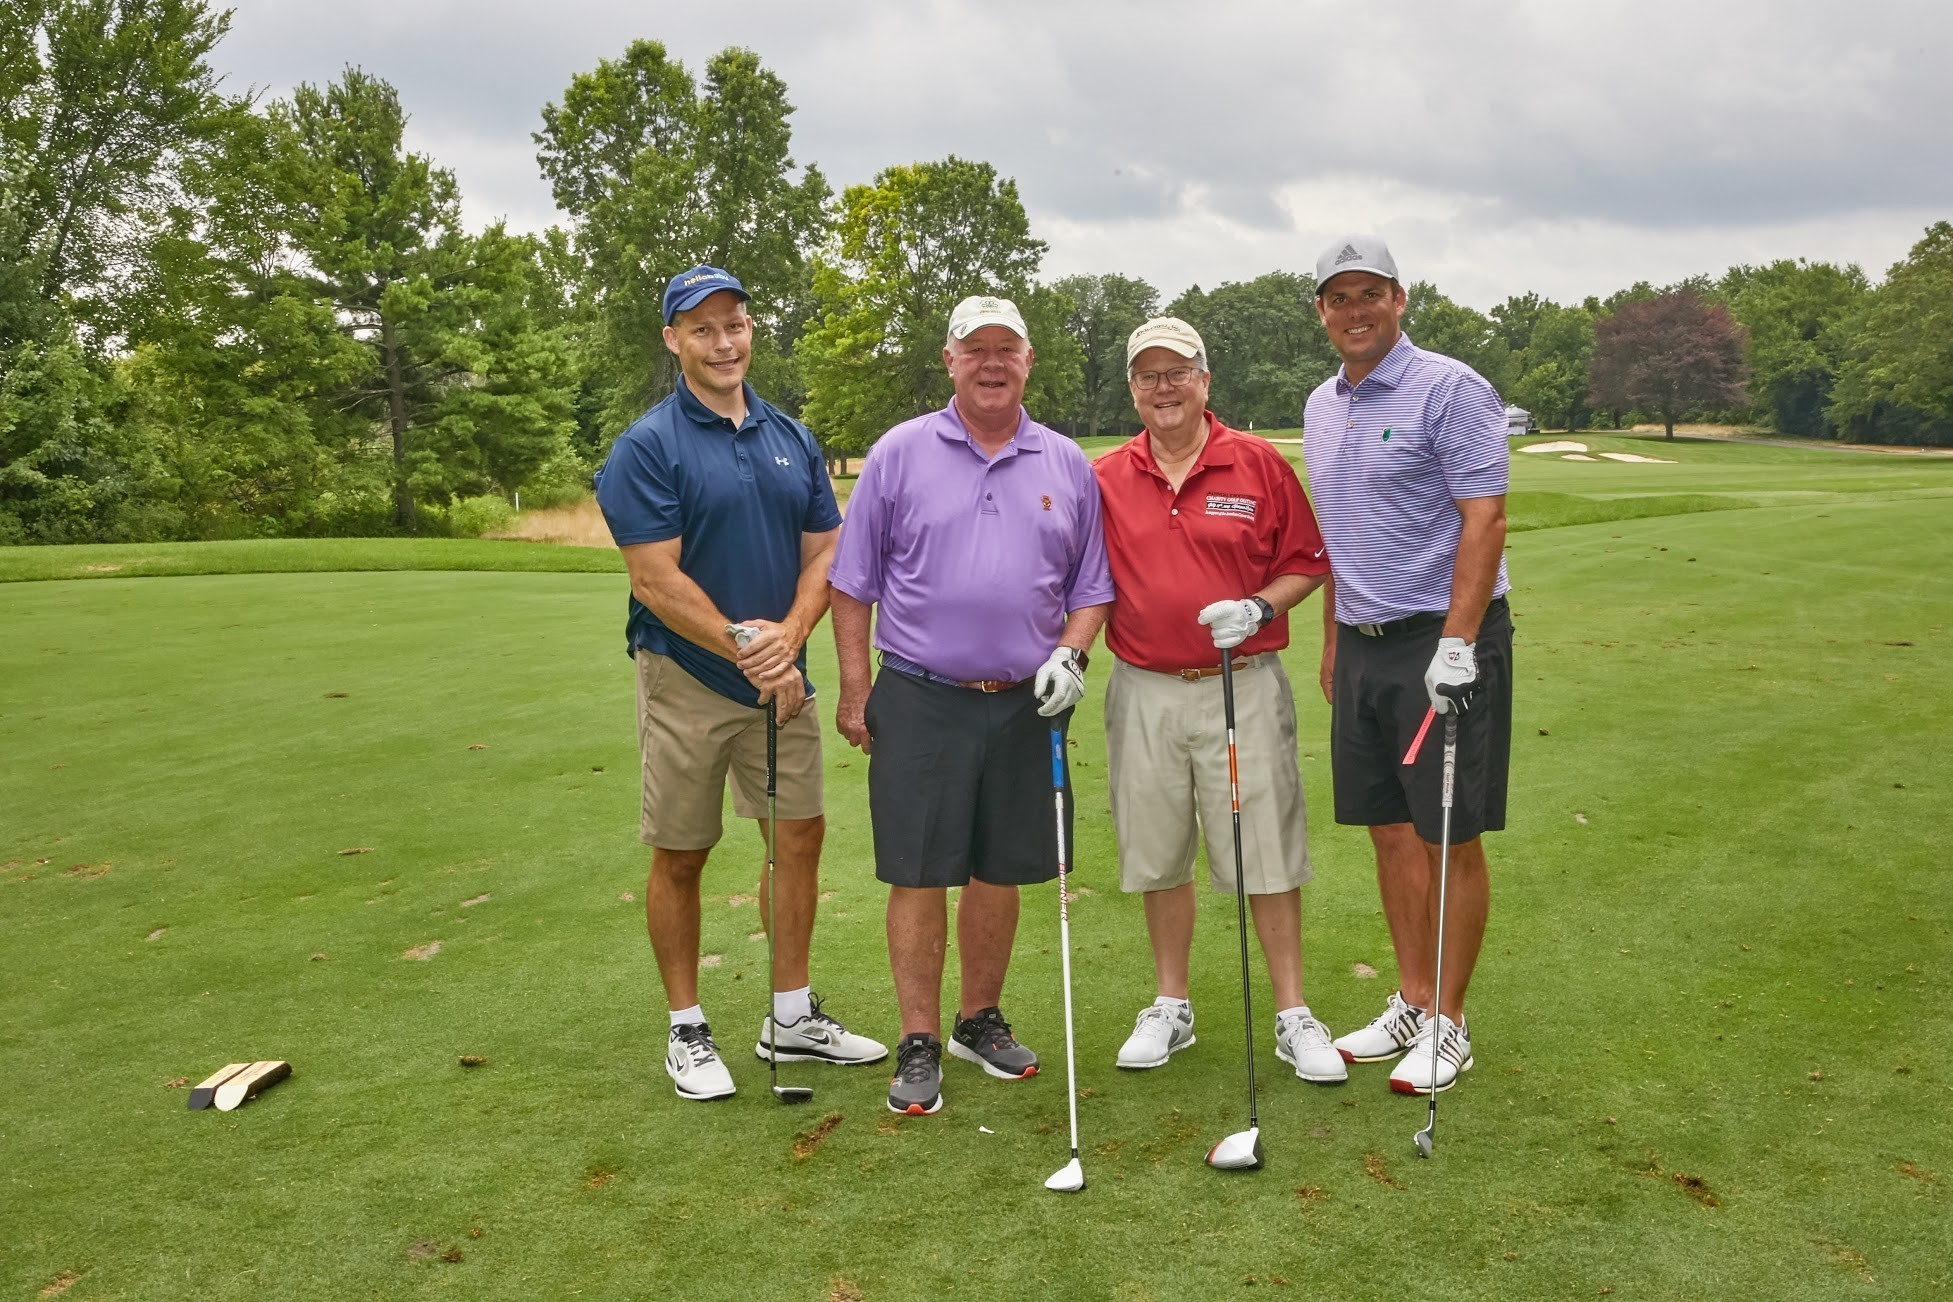 11th Annual Kroeschell Charity Golf Outing                       September 13th, 2021 gallery image #8